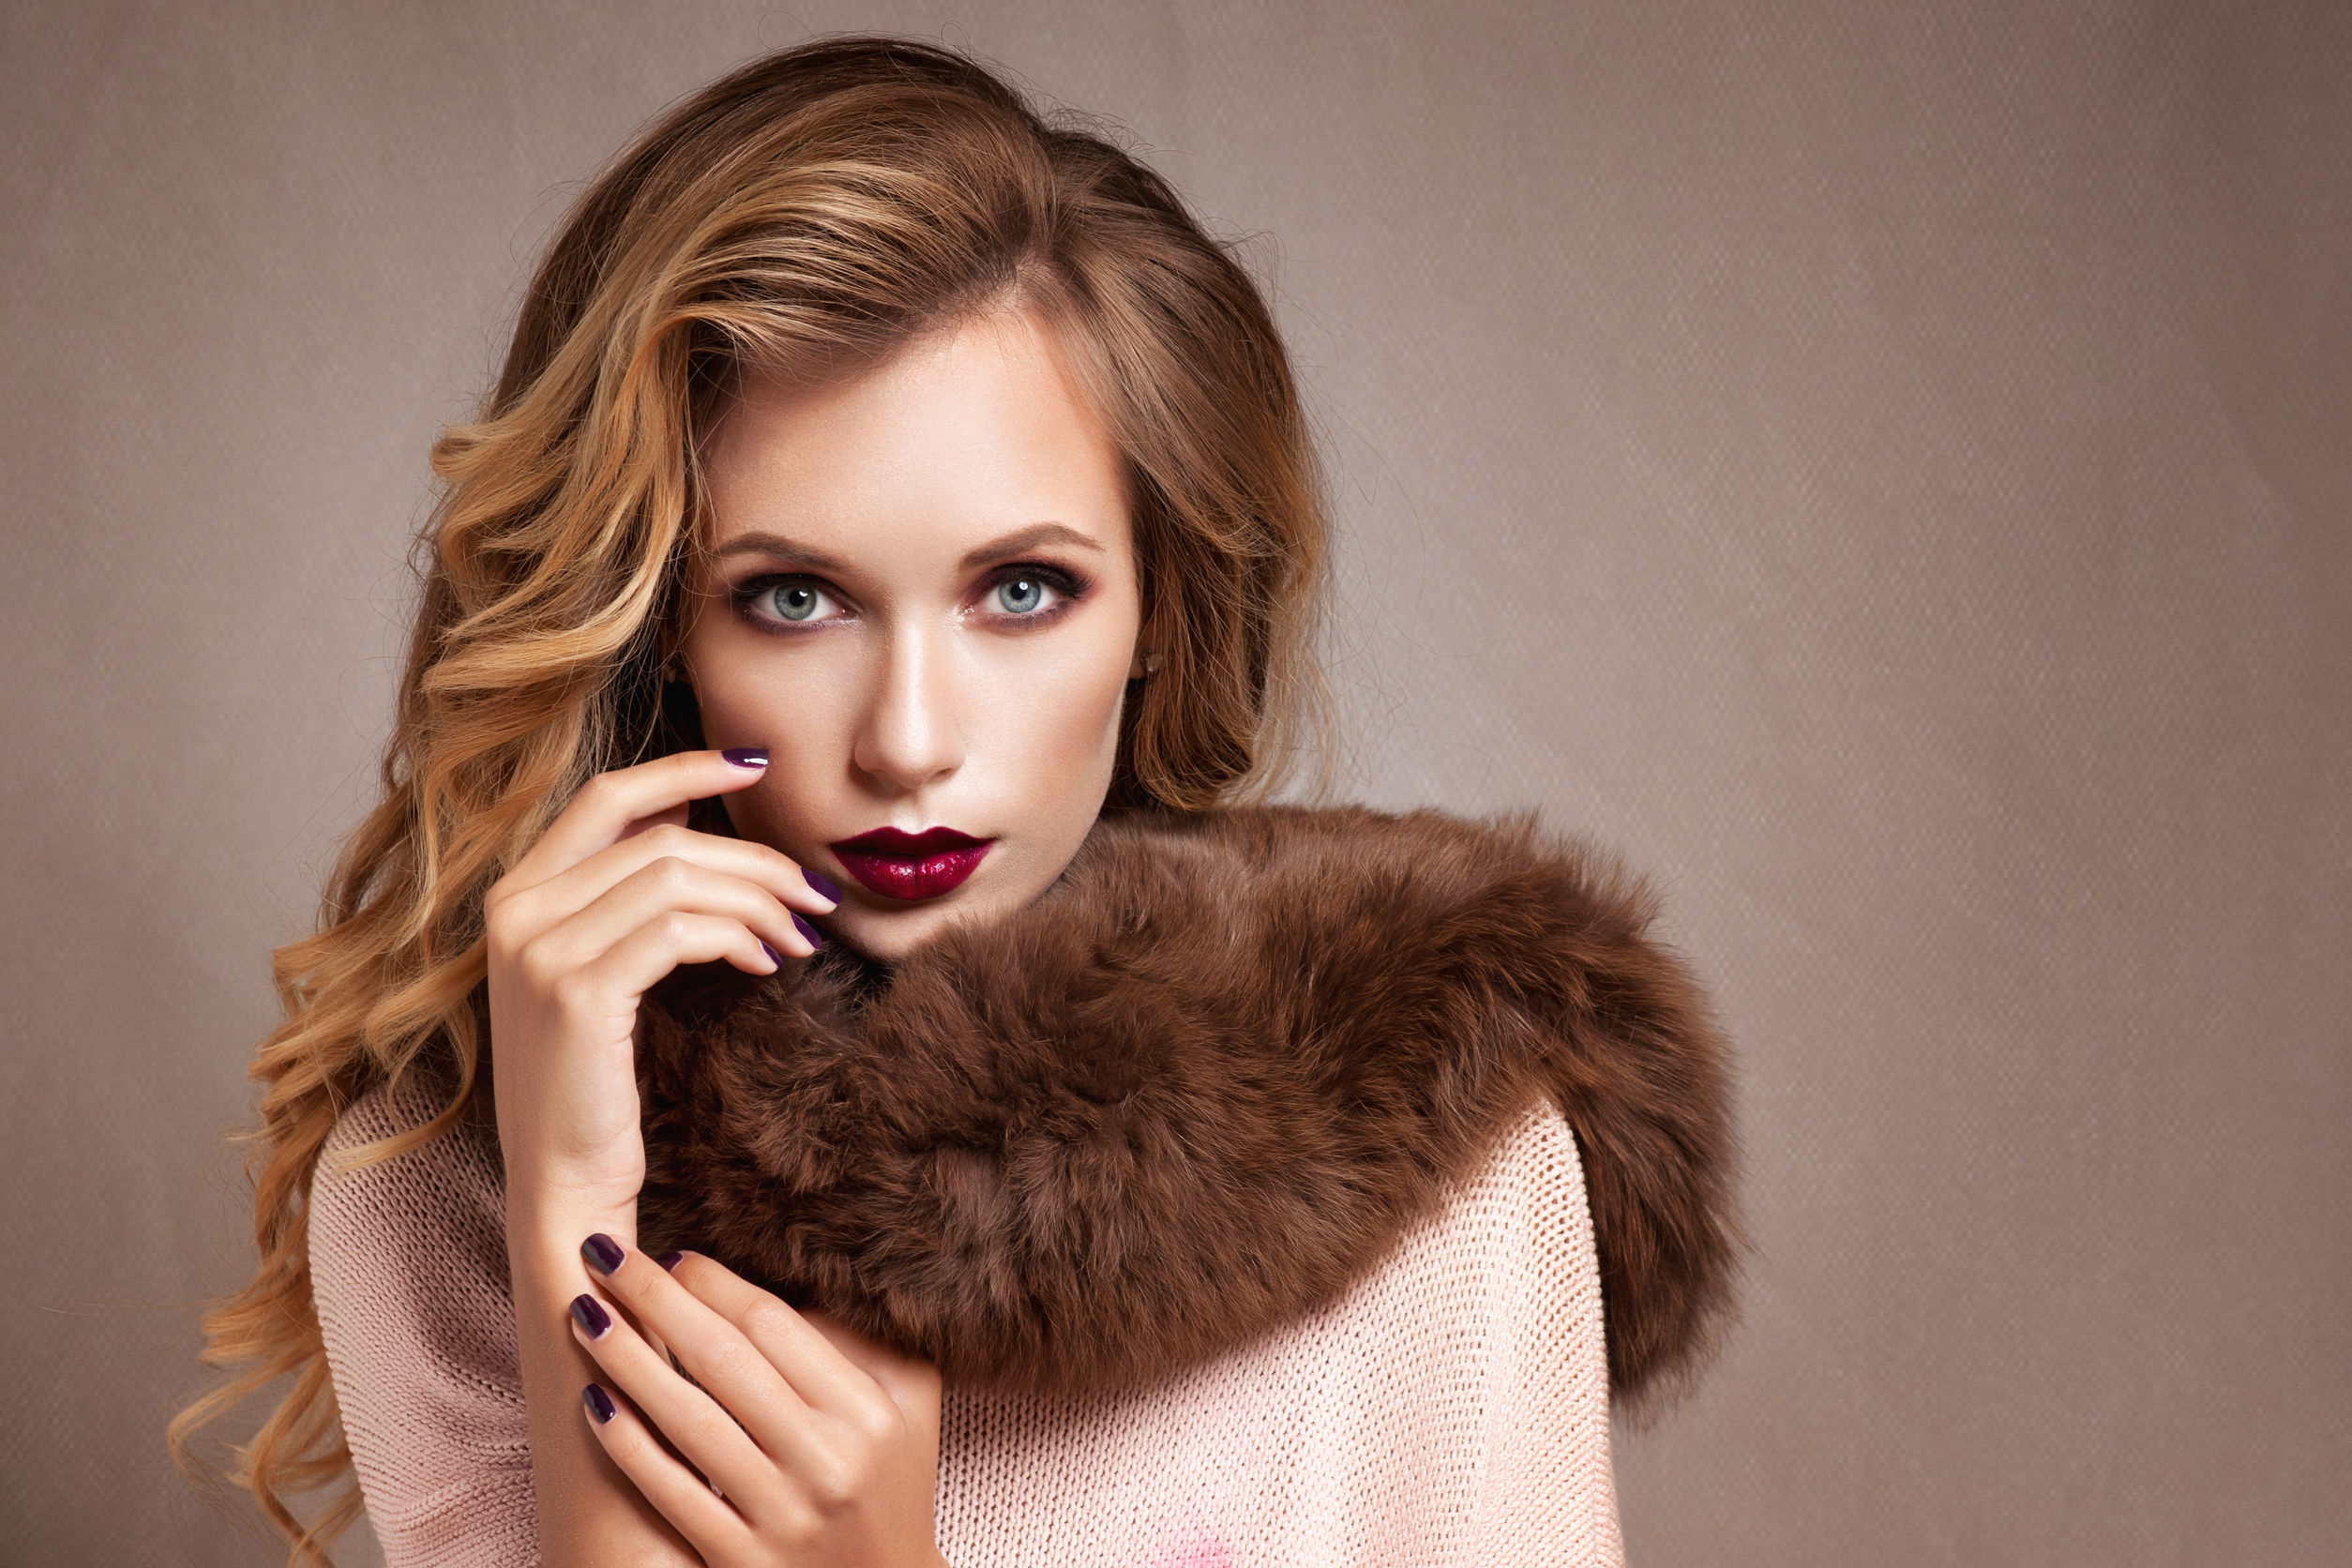 45089941 - beautiful woman in luxury fur coat